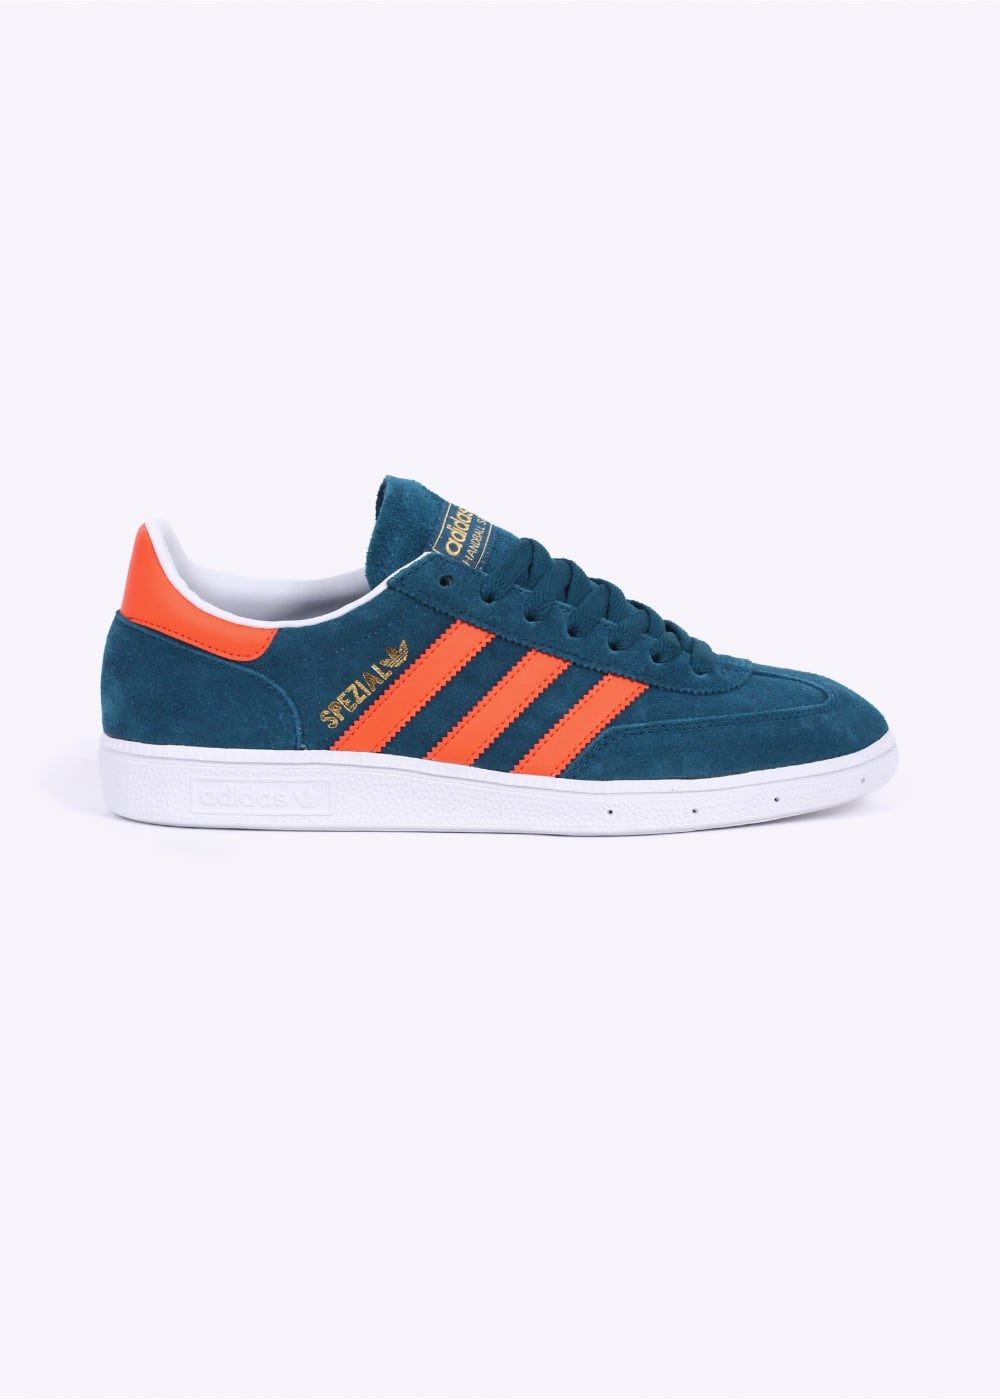 free shipping ba4c0 10e12 Spezial Trainers - Mineral Grey